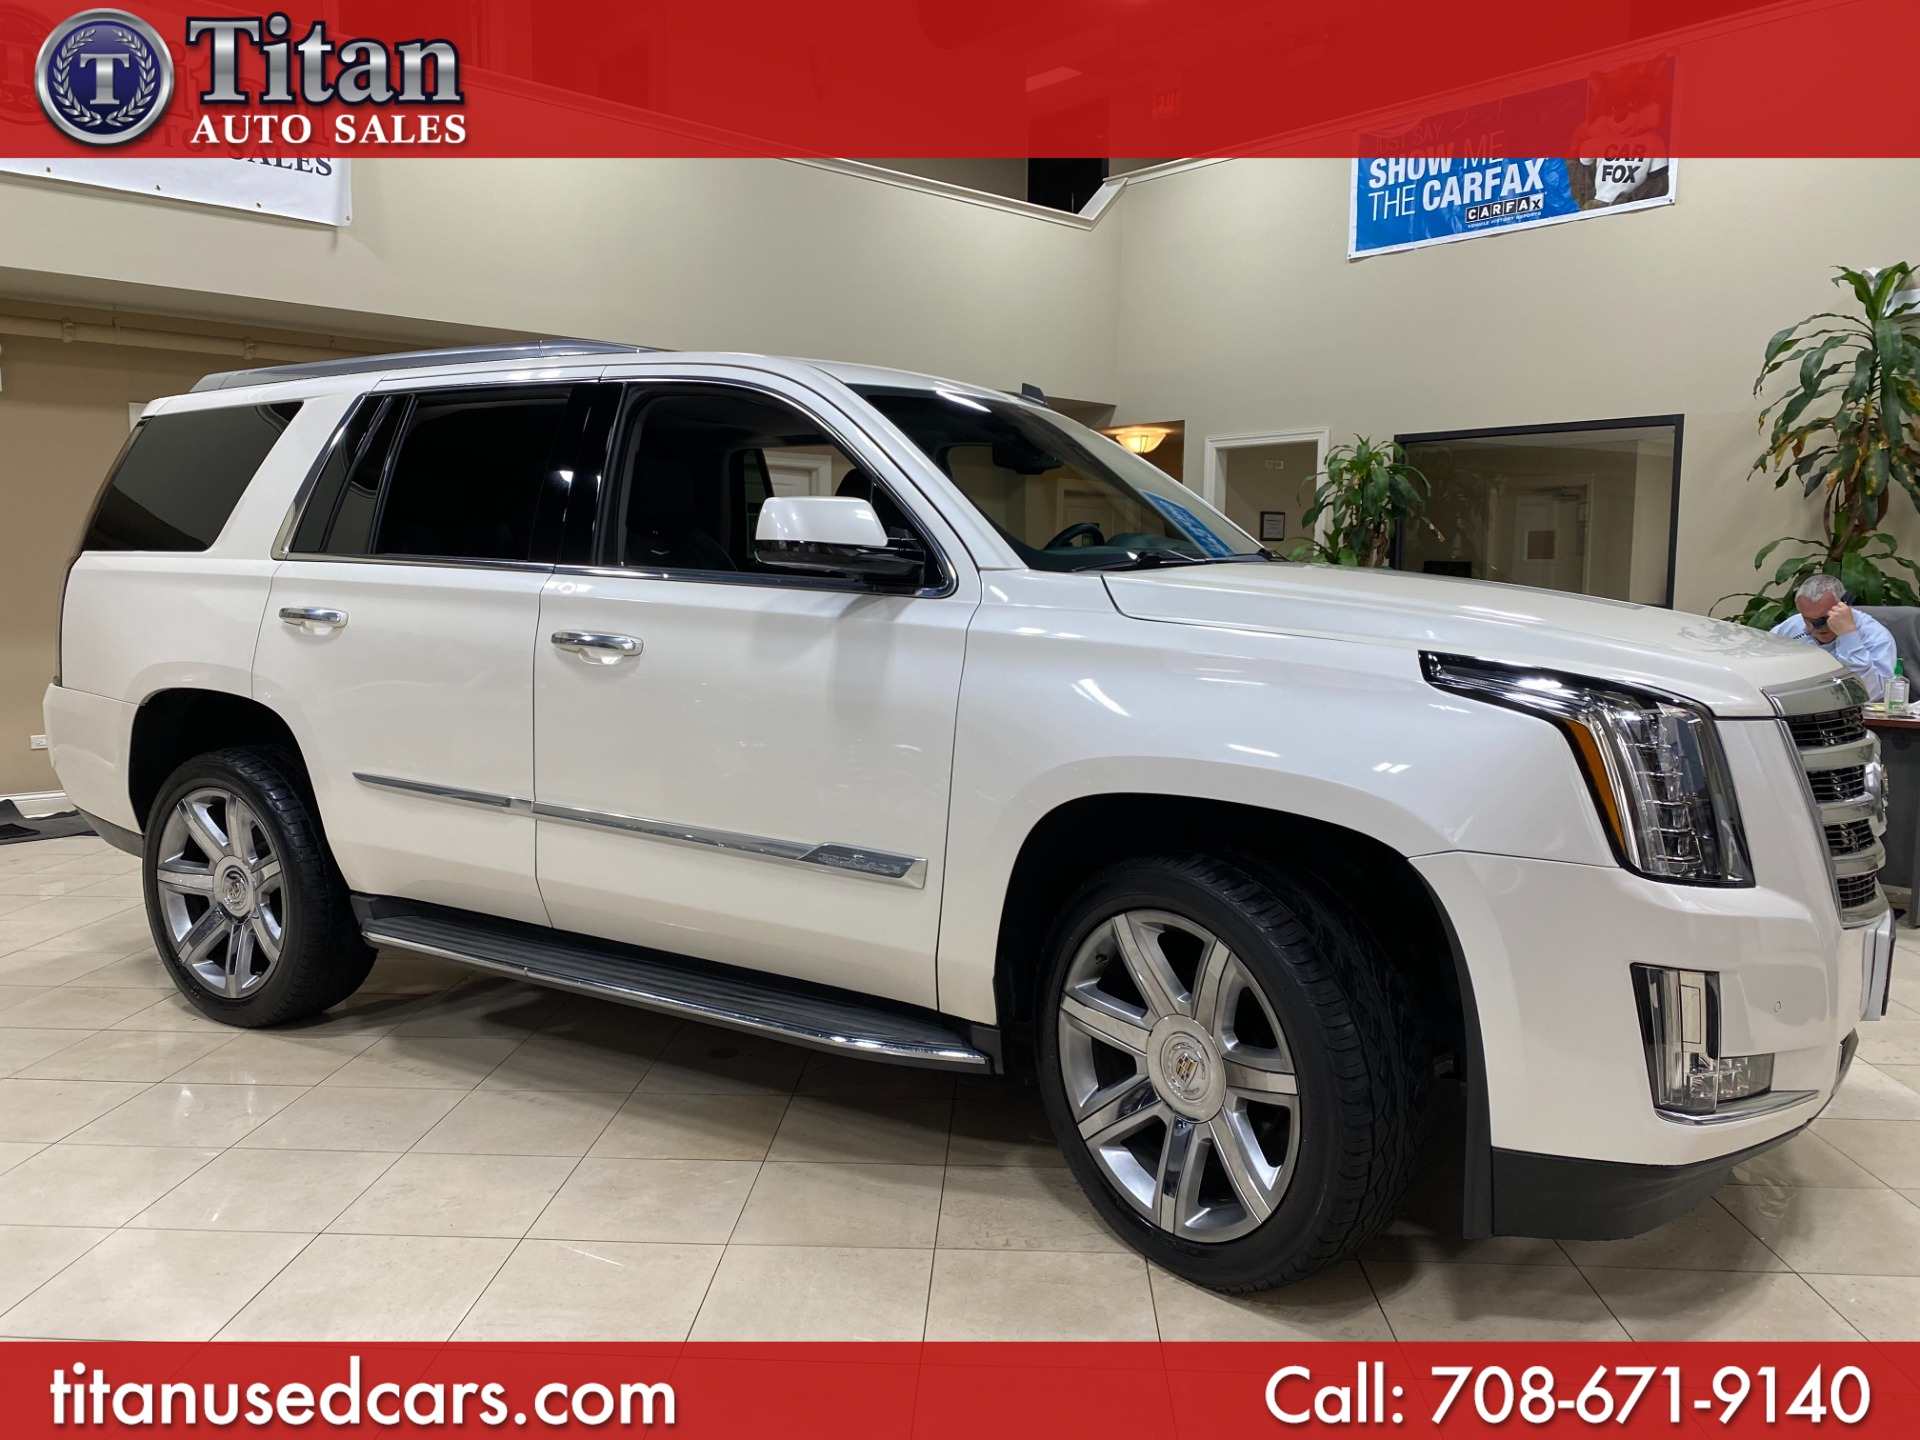 Used Cadillac Escalade Worth Il